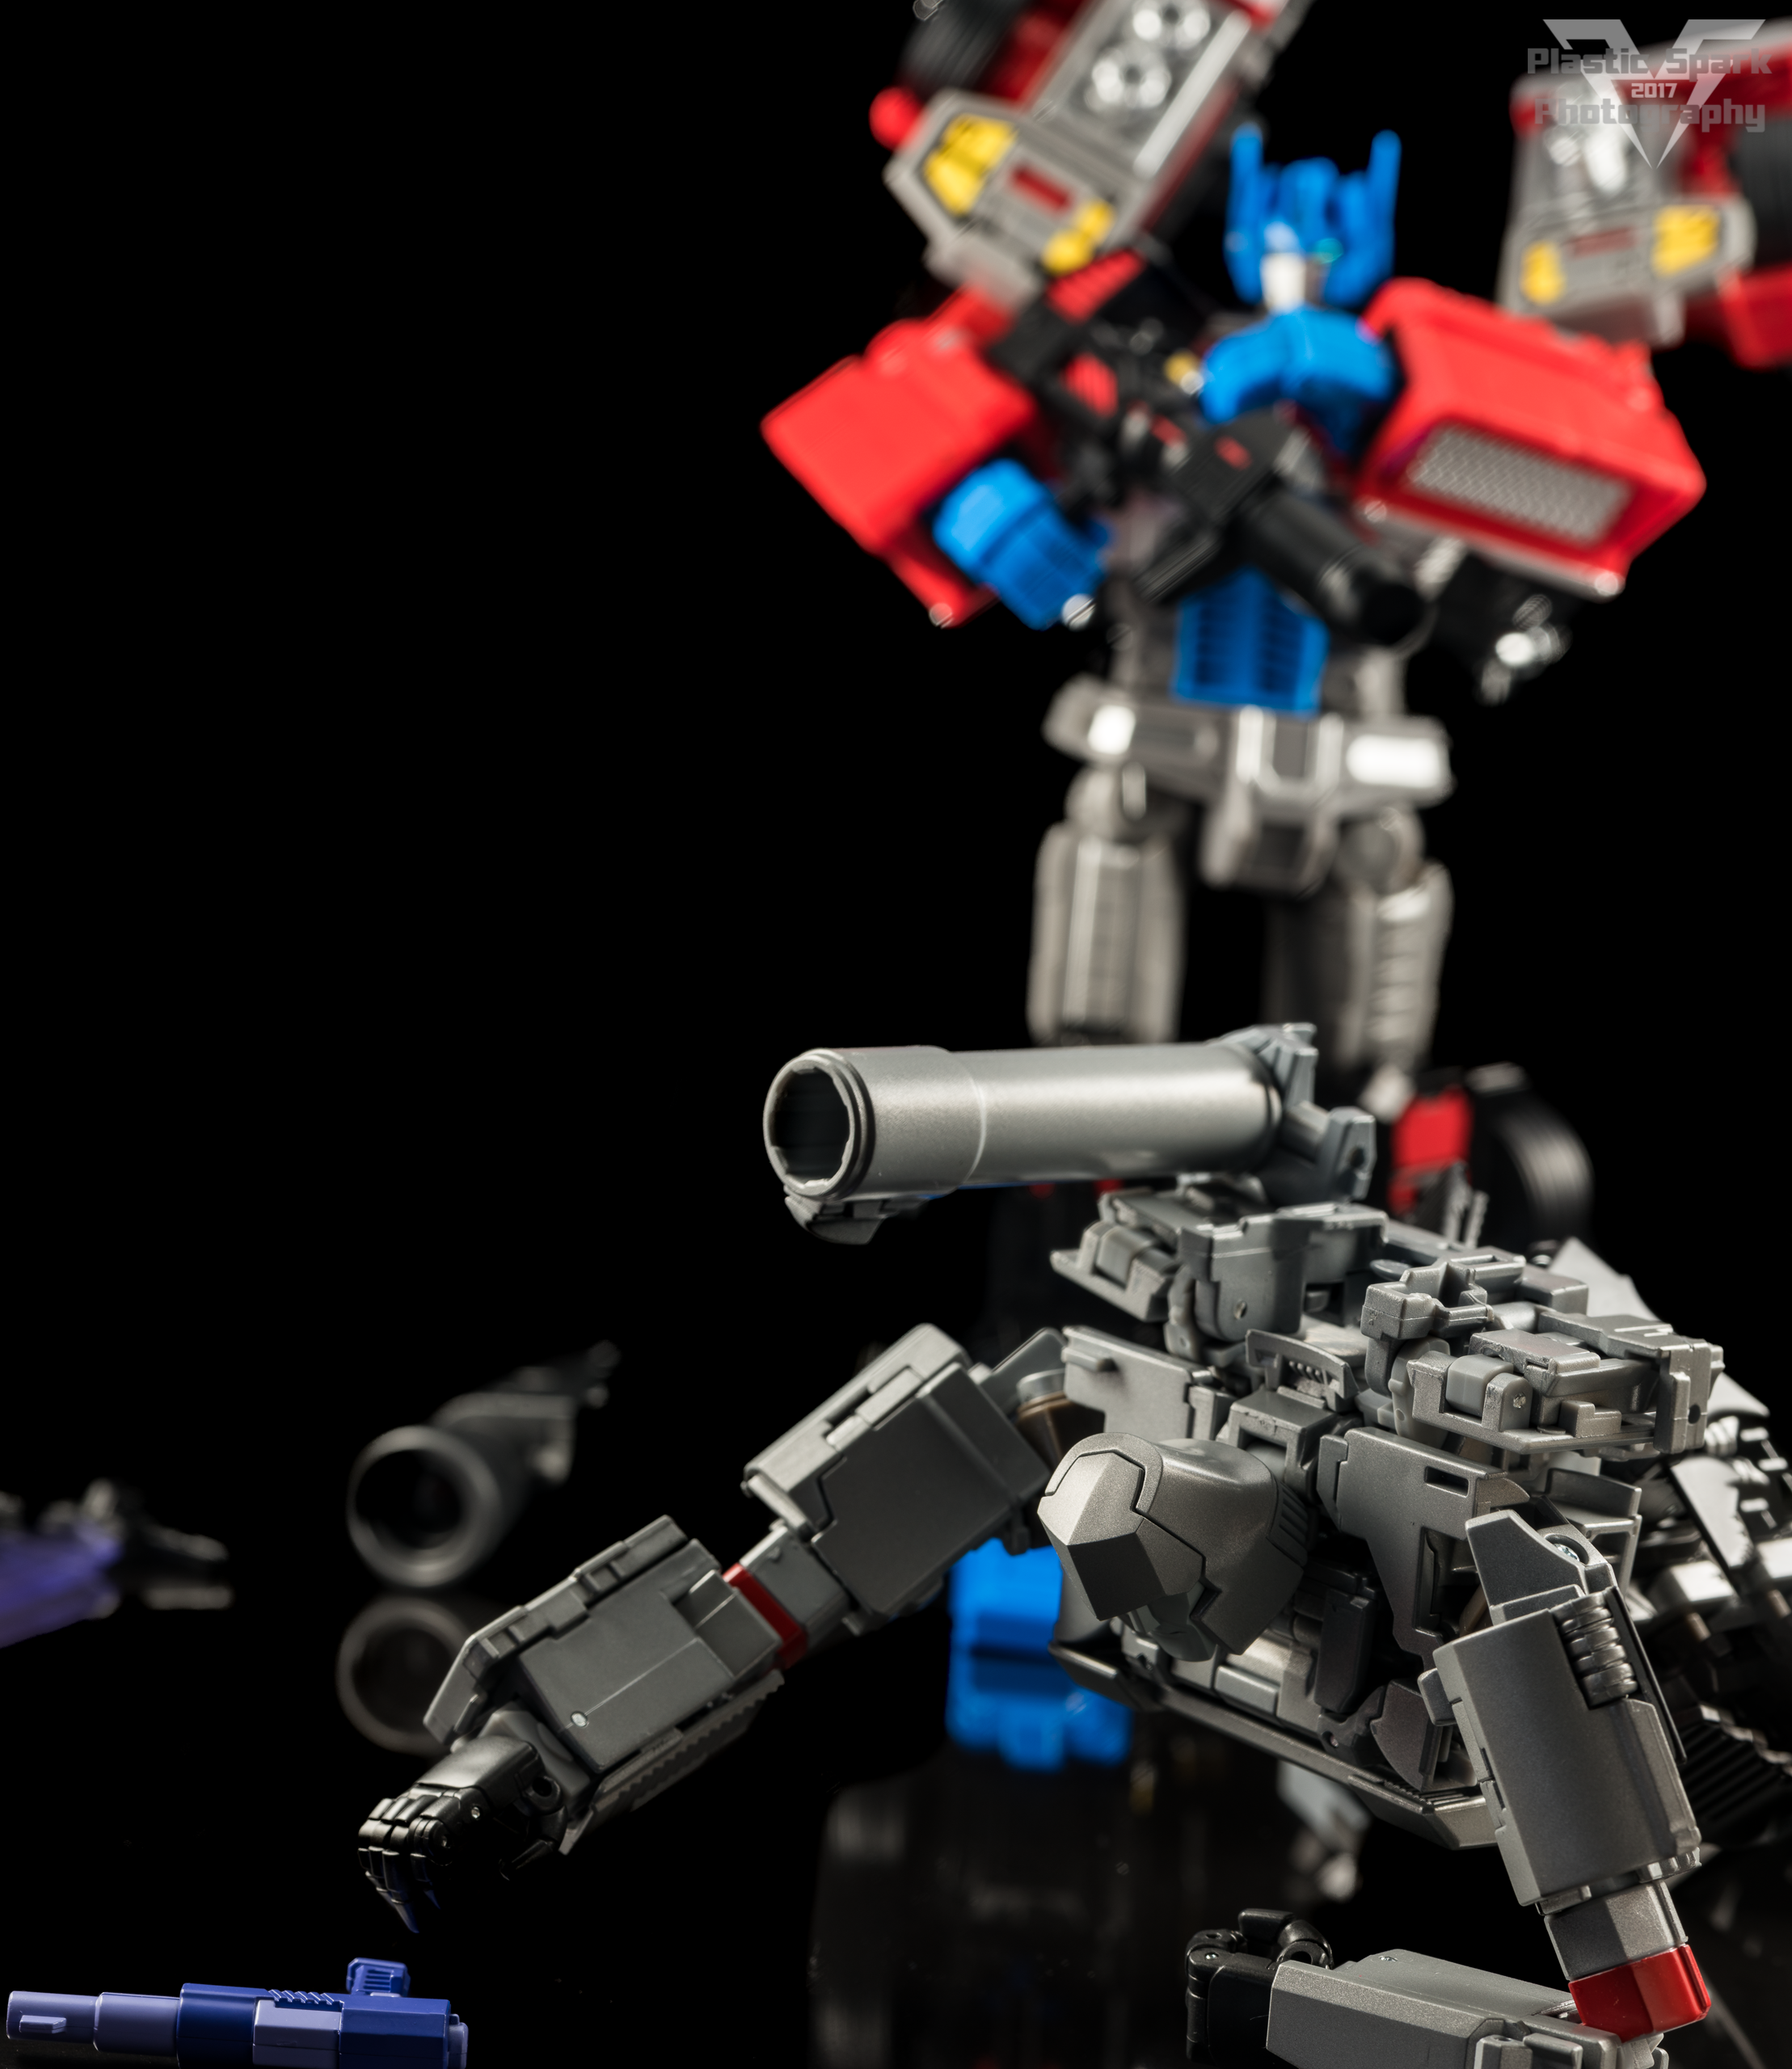 Fans-Hobby-MB-04-Gunfighter-II-(60-of-61).png